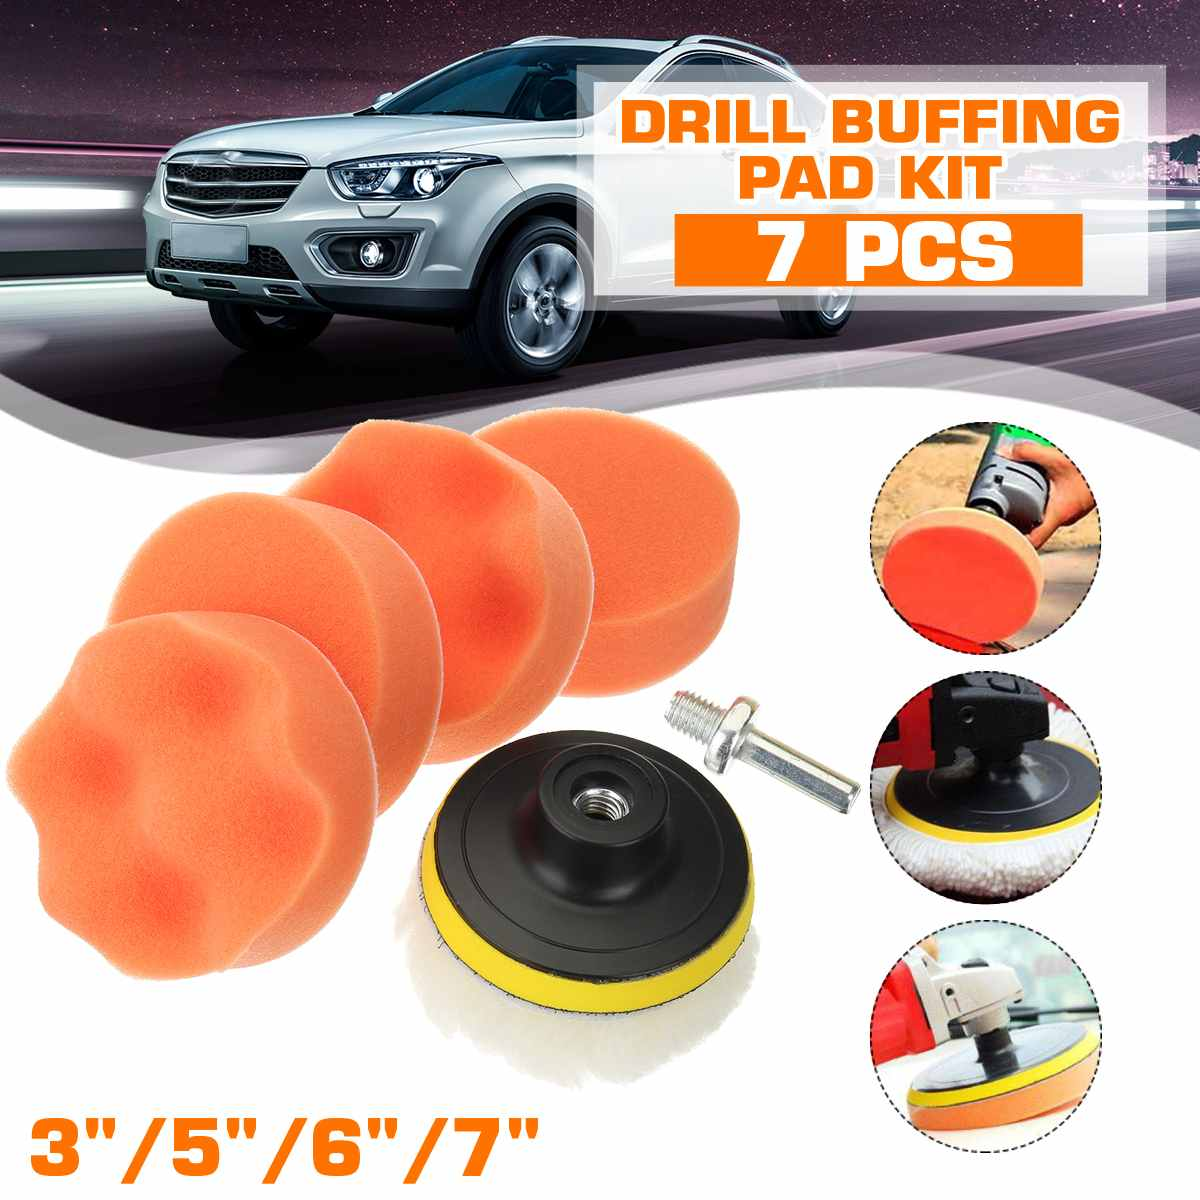 7 inch Waxing Pad Sets Tool for Car Polisher Buffer with Drill Adapter Car-styling Auto Car Polished Pad Kit